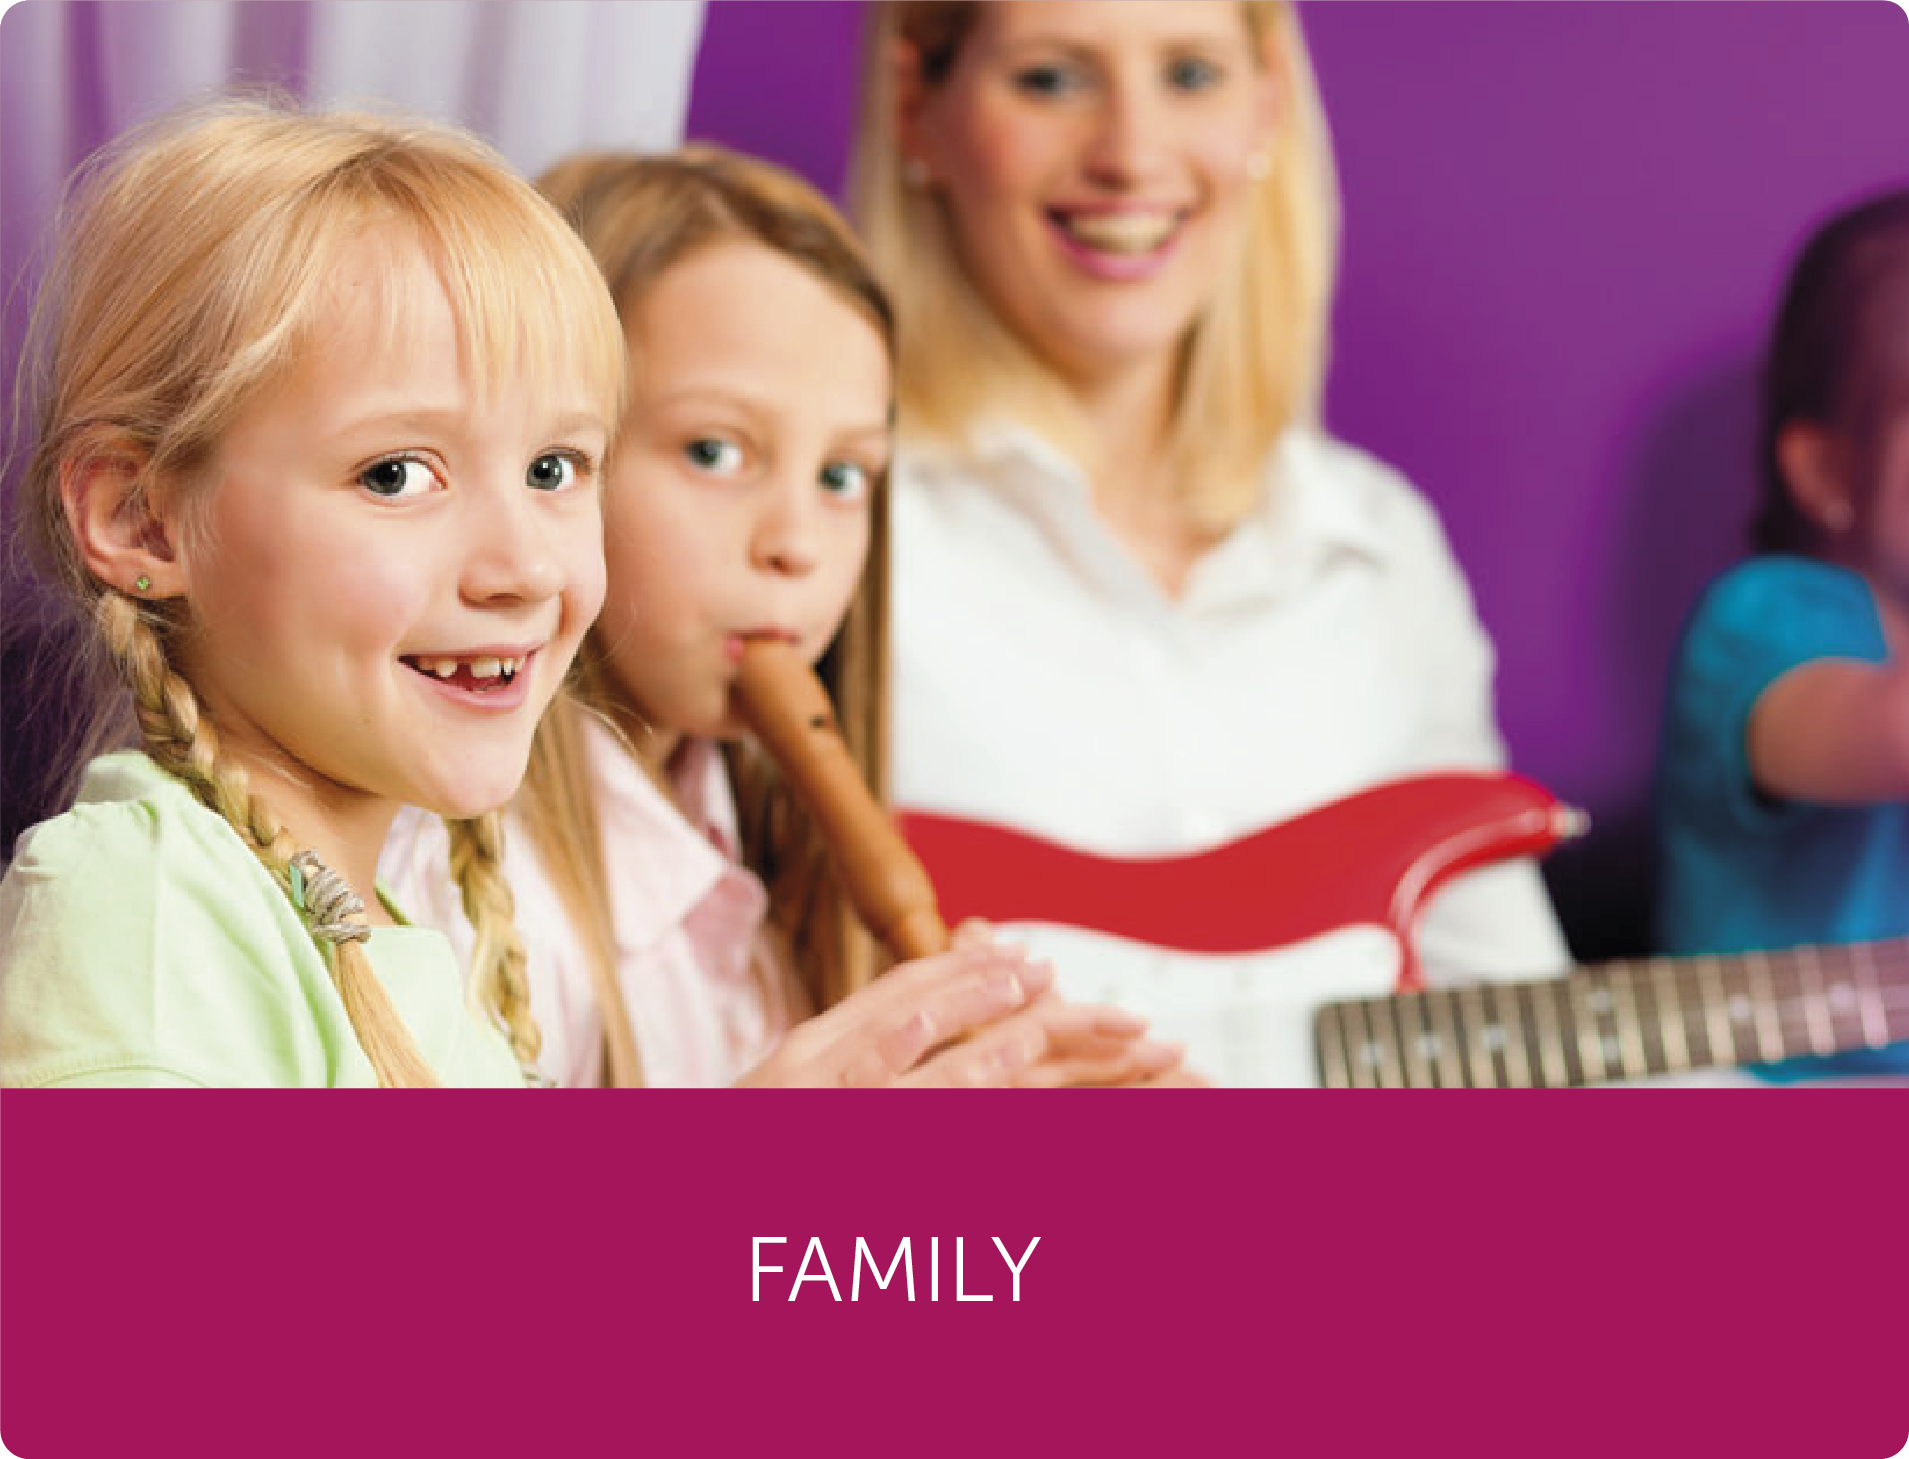 Find out about our Family programmes